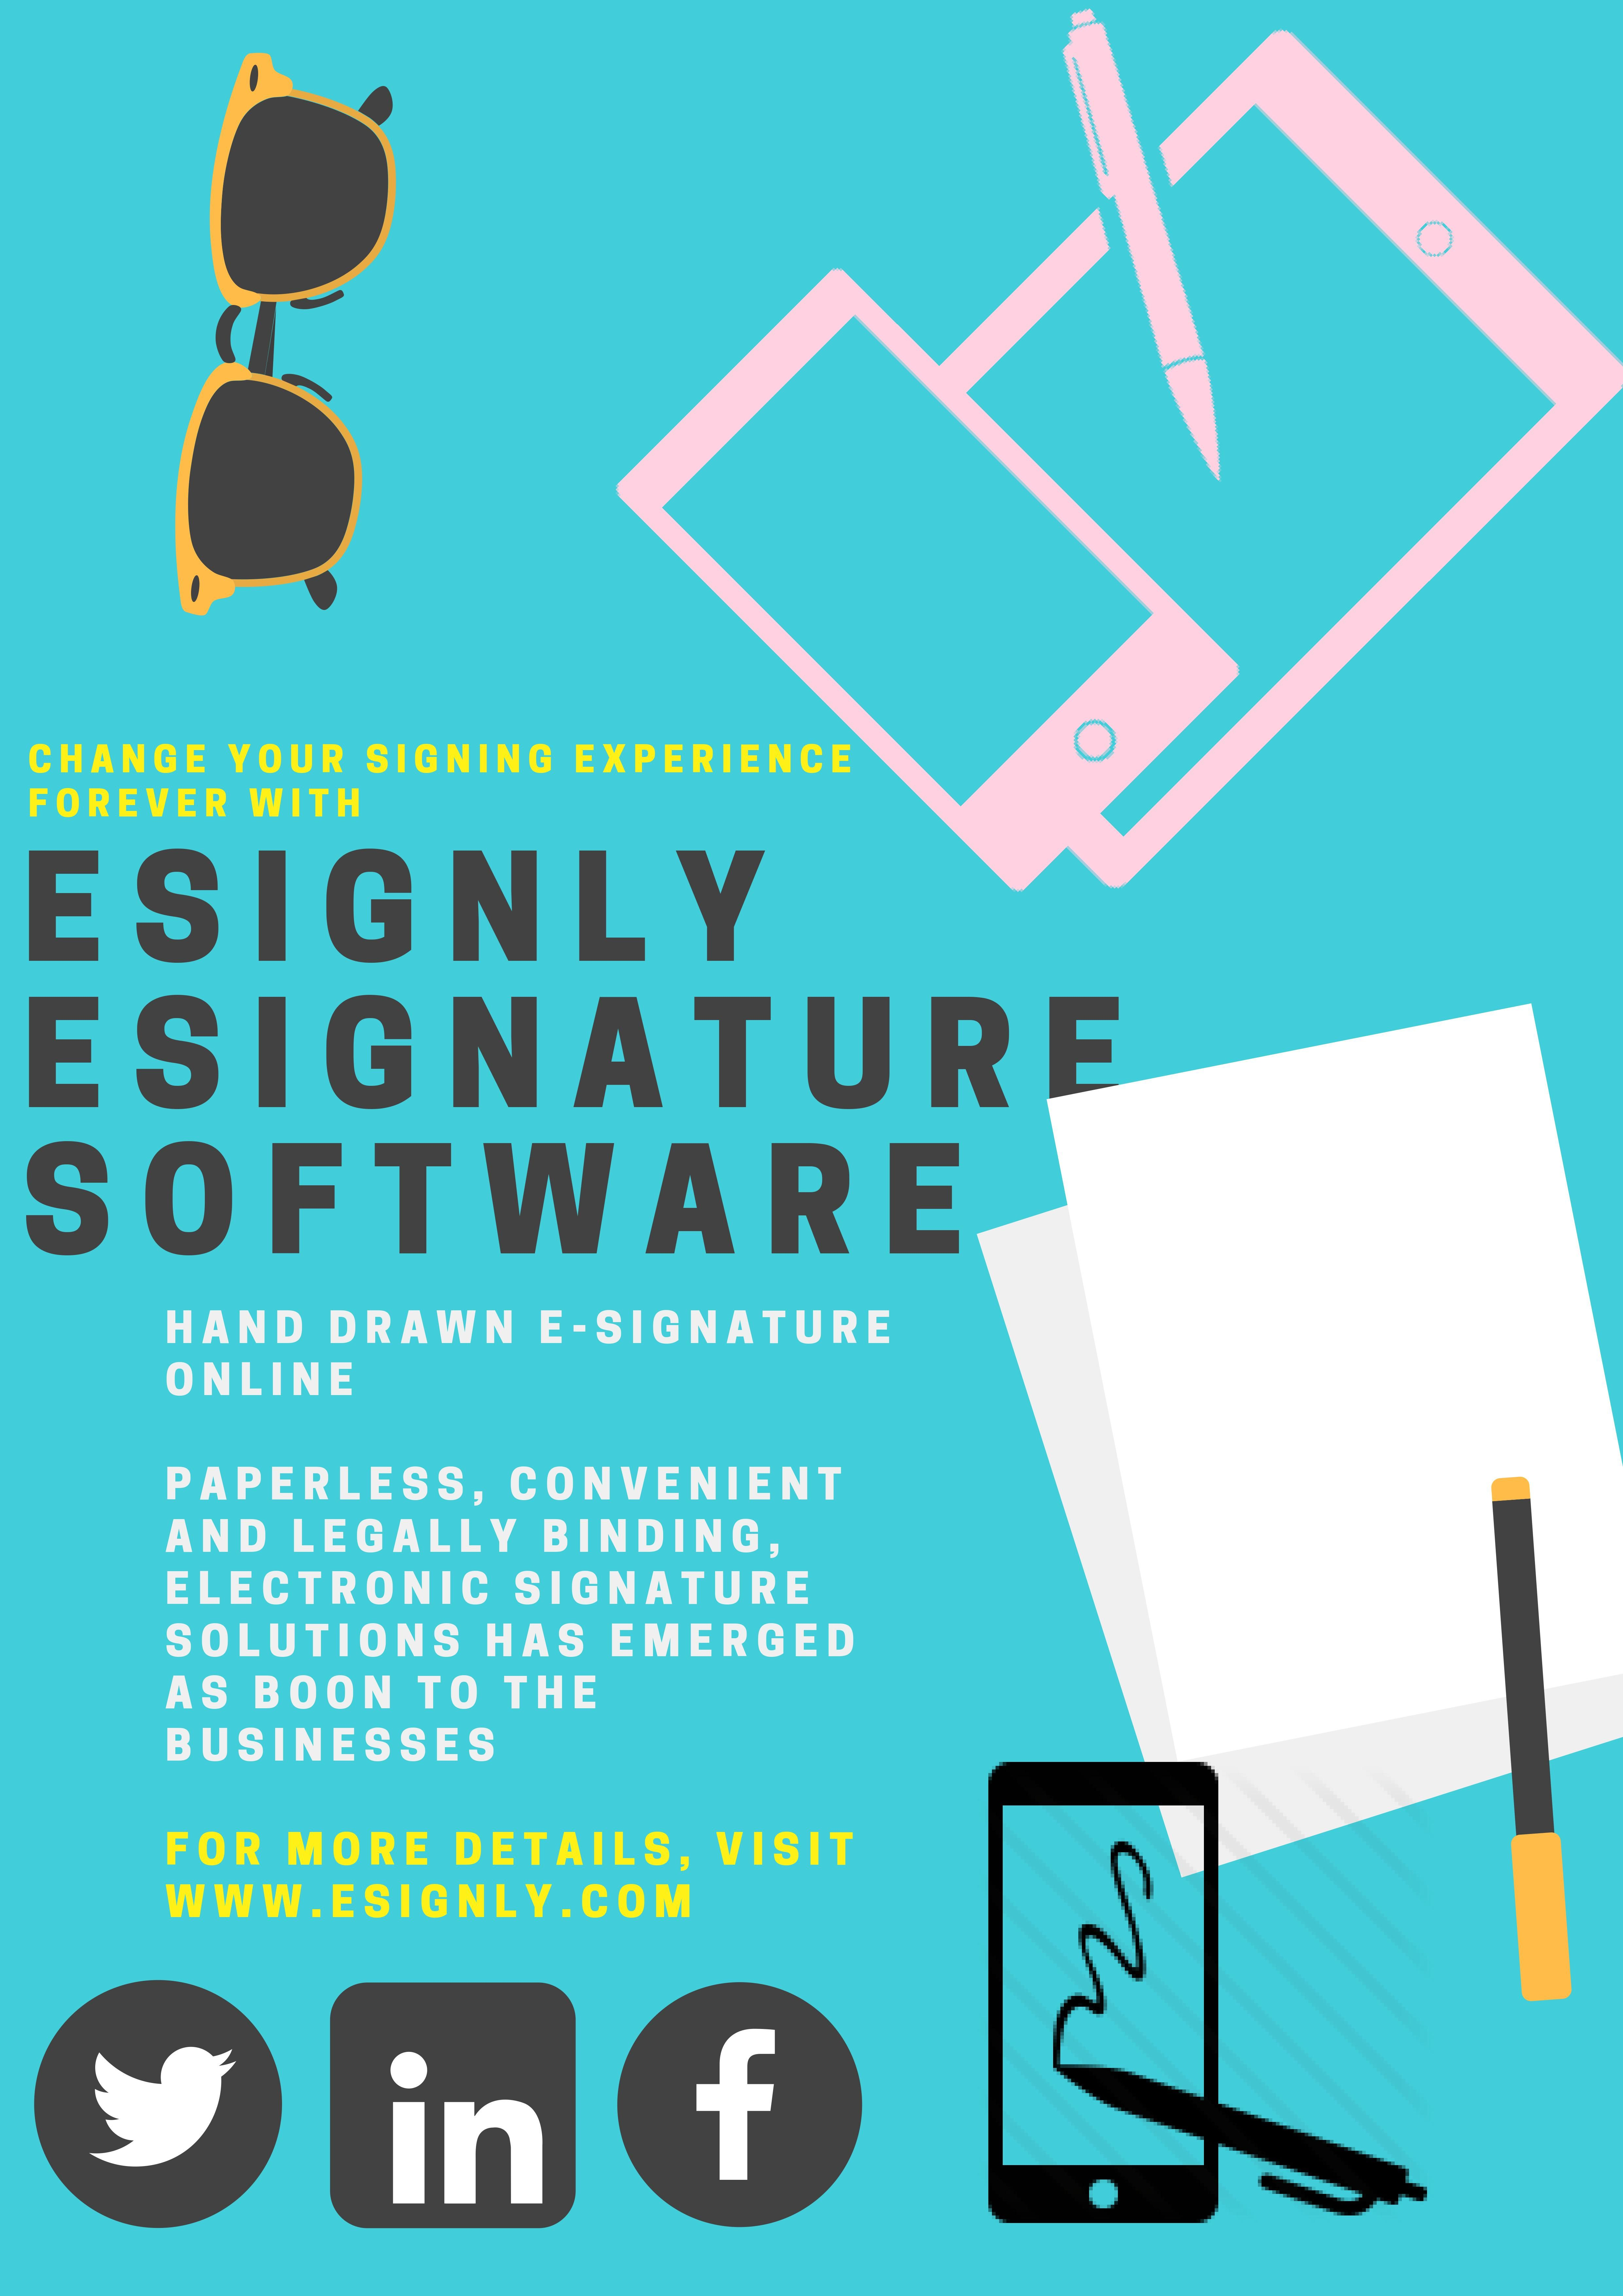 Best, innovative electronic signature software by eSignly to ...